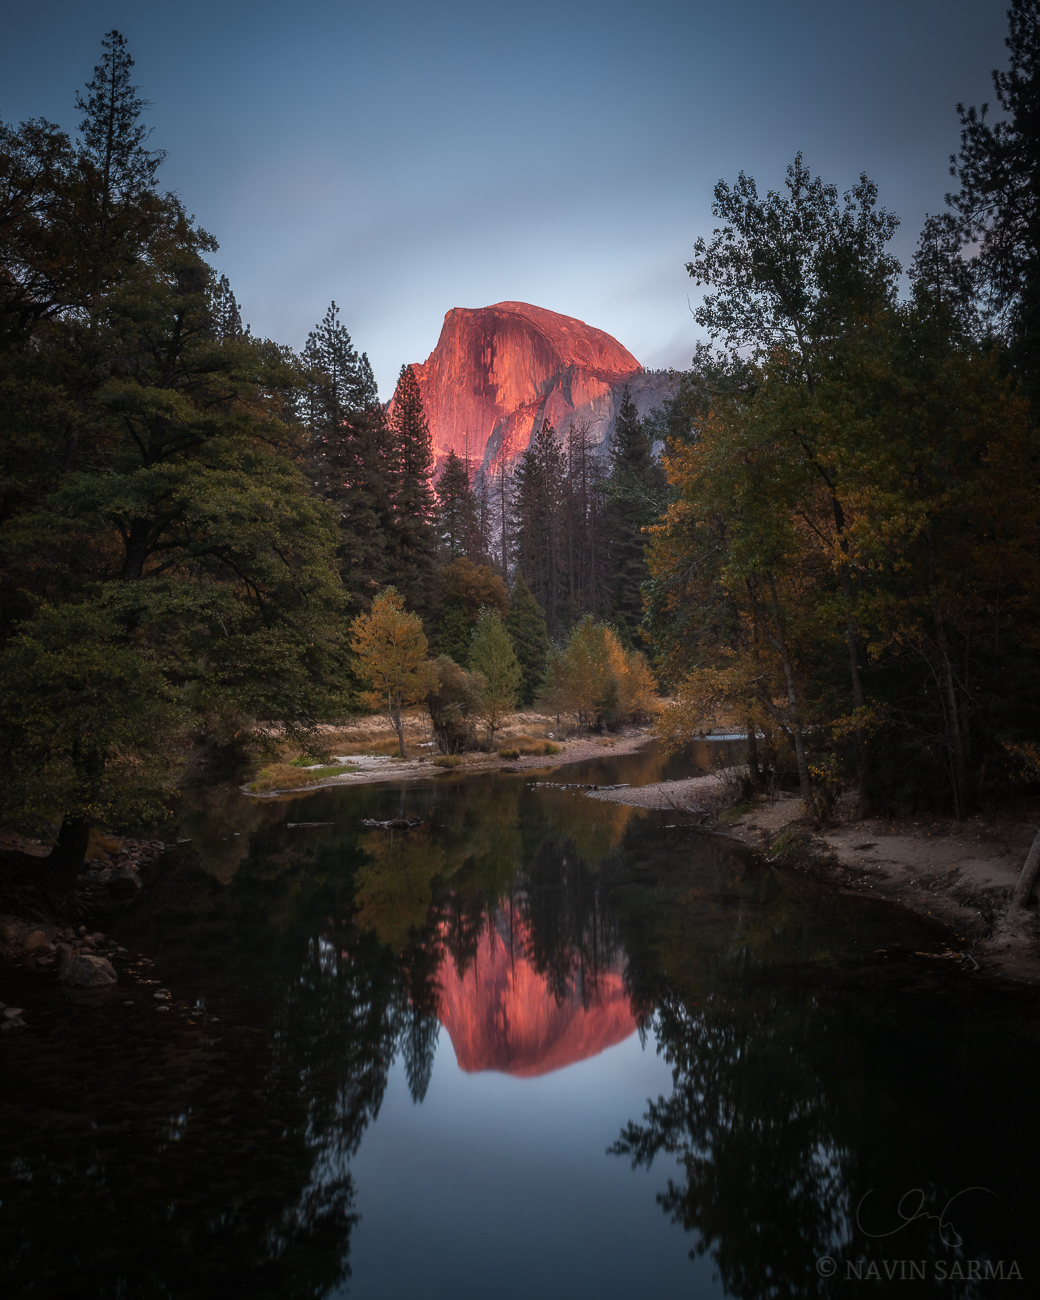 A classic view of the reflection of late evening light over Half Dome